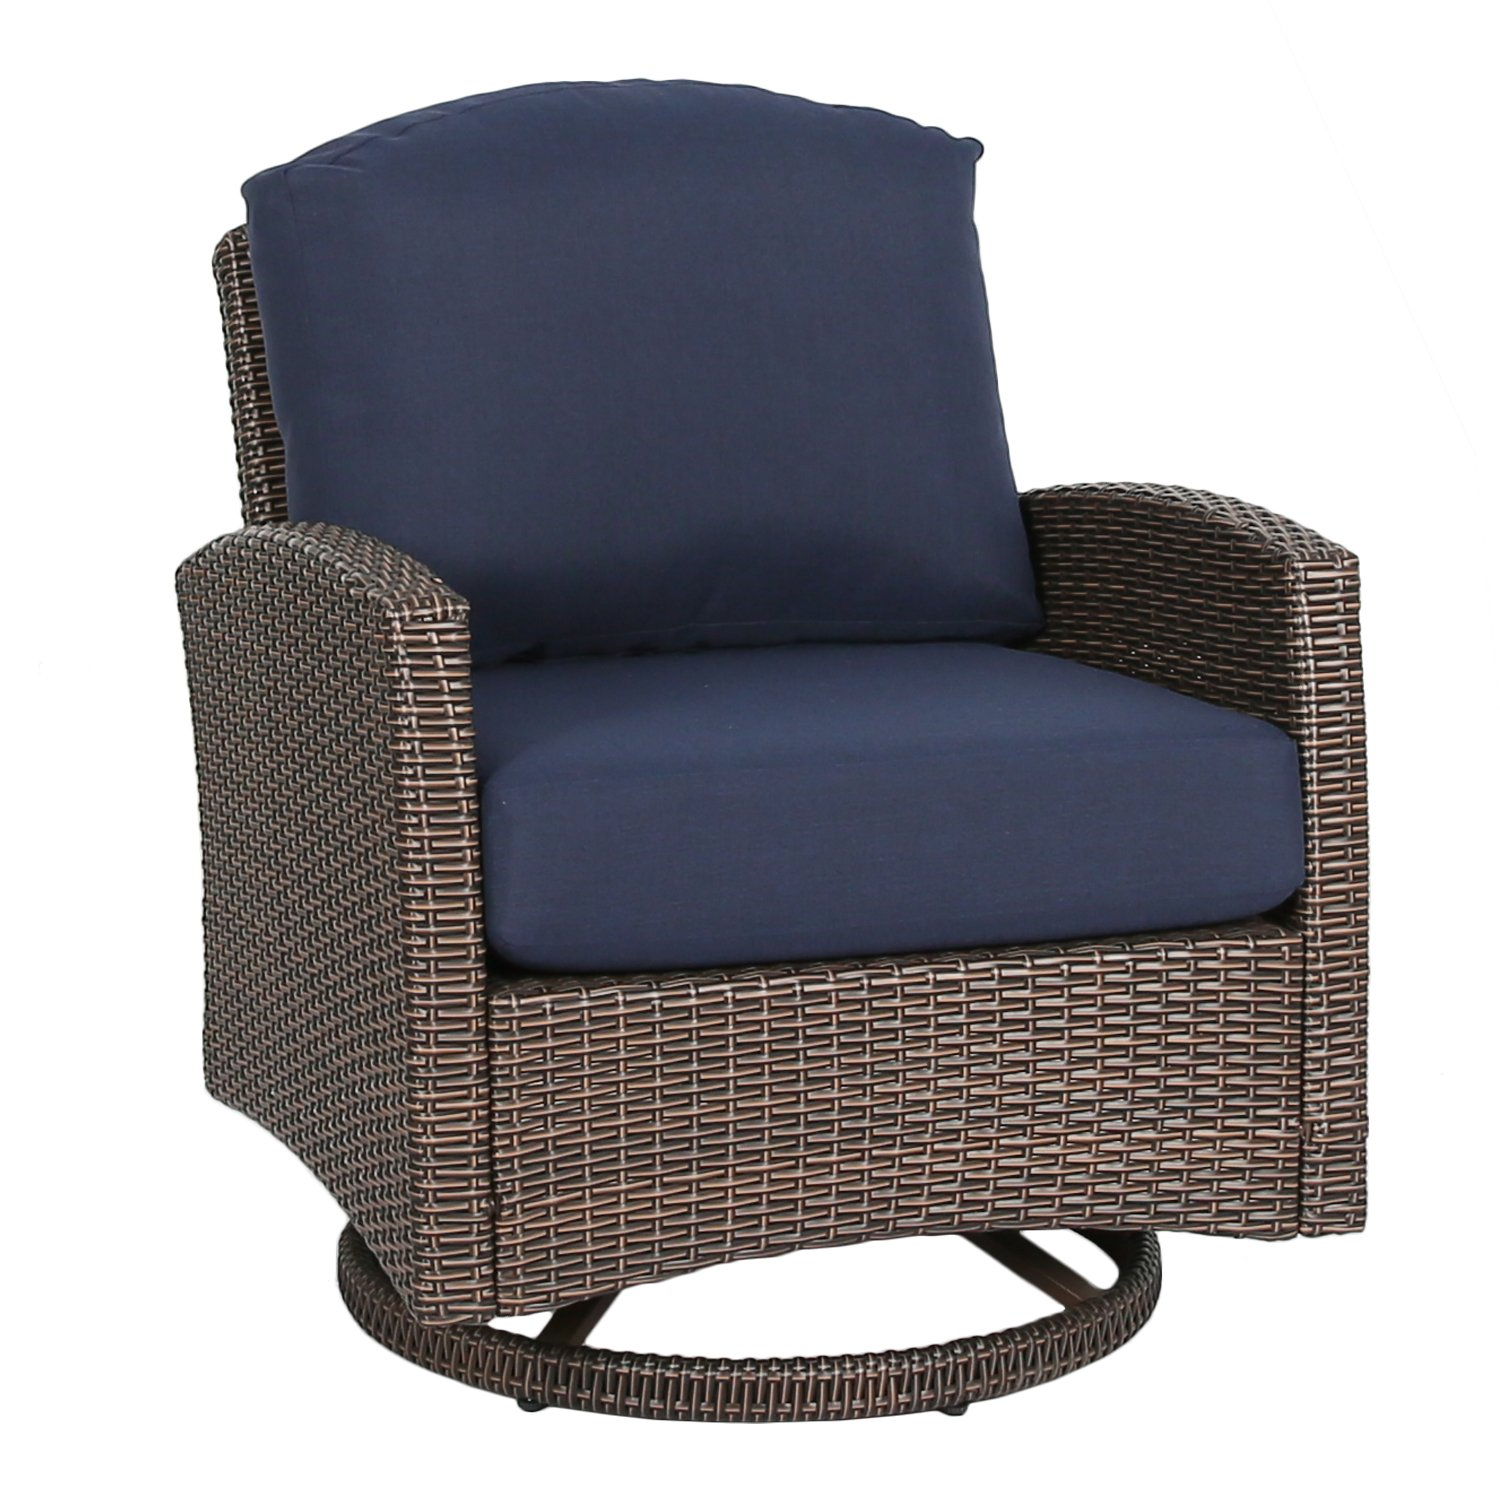 Ulax furniture Outdoor Wicker Swivel Club Chair Patio Lounge Chair with Cushion, Navy Blue